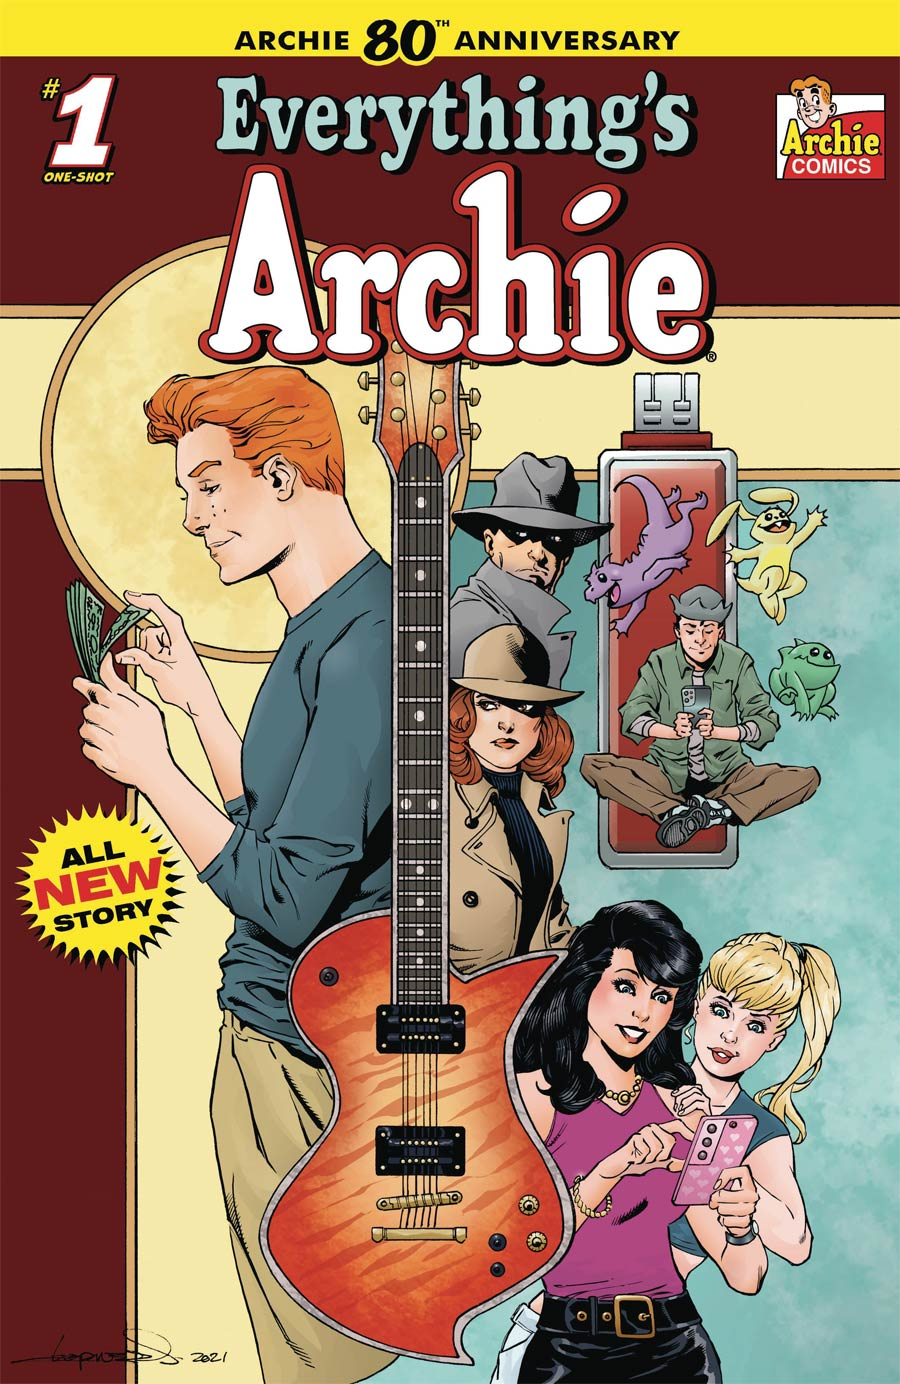 Archie 80th Anniversary #1 (One Shot) Everythings Archie Cover D Variant Aaron Lopresti Cover